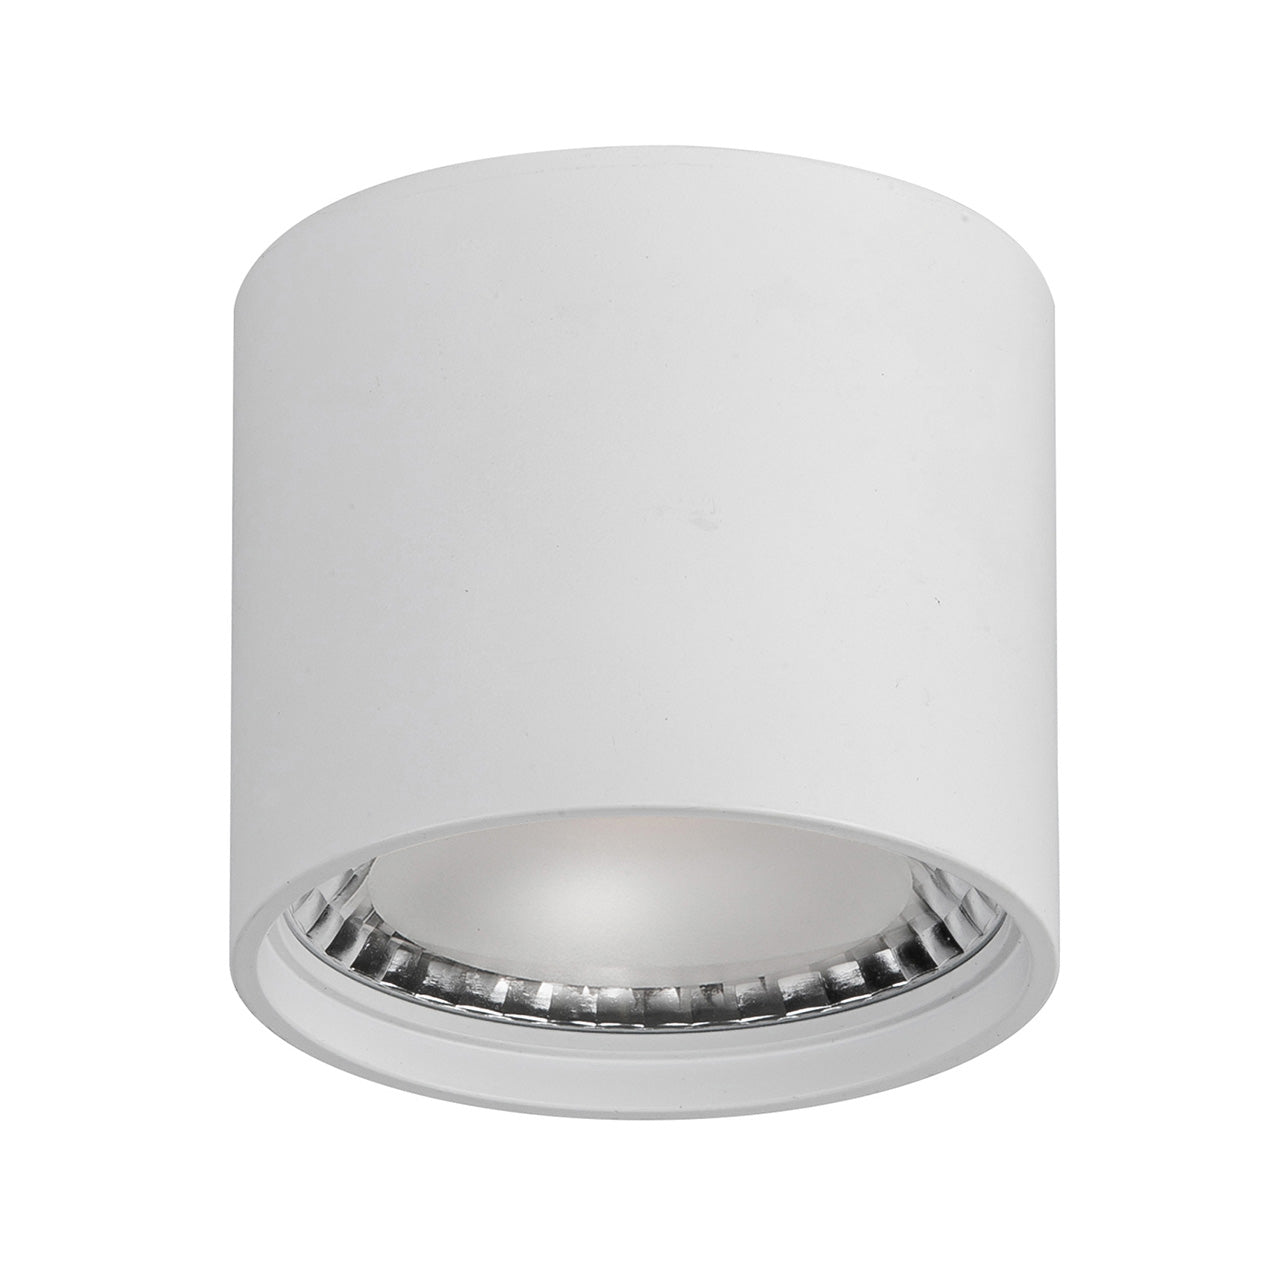 HV5802-WHT - NELLA White 7w Surface Mounted LED Downlight